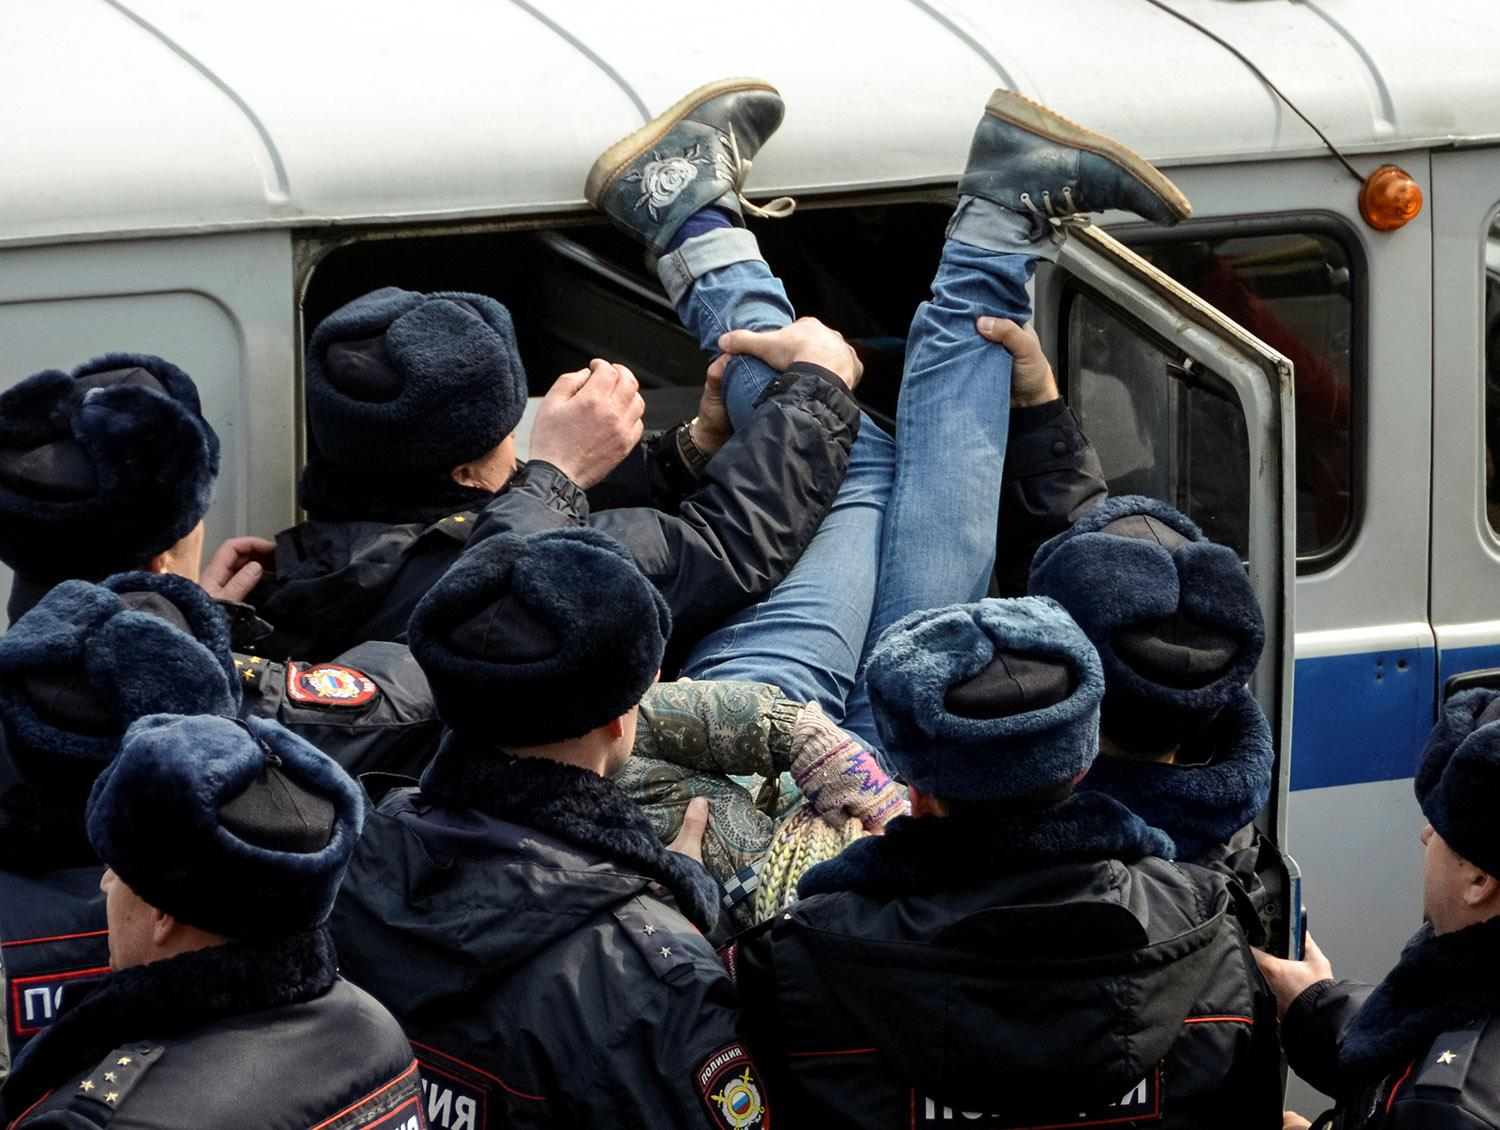 <p>Police officers detain an opposition supporter during a rally in Vladivostok, Russia, March 26, 2017. (Photo: Yuri Maltsev/Reuters) </p>